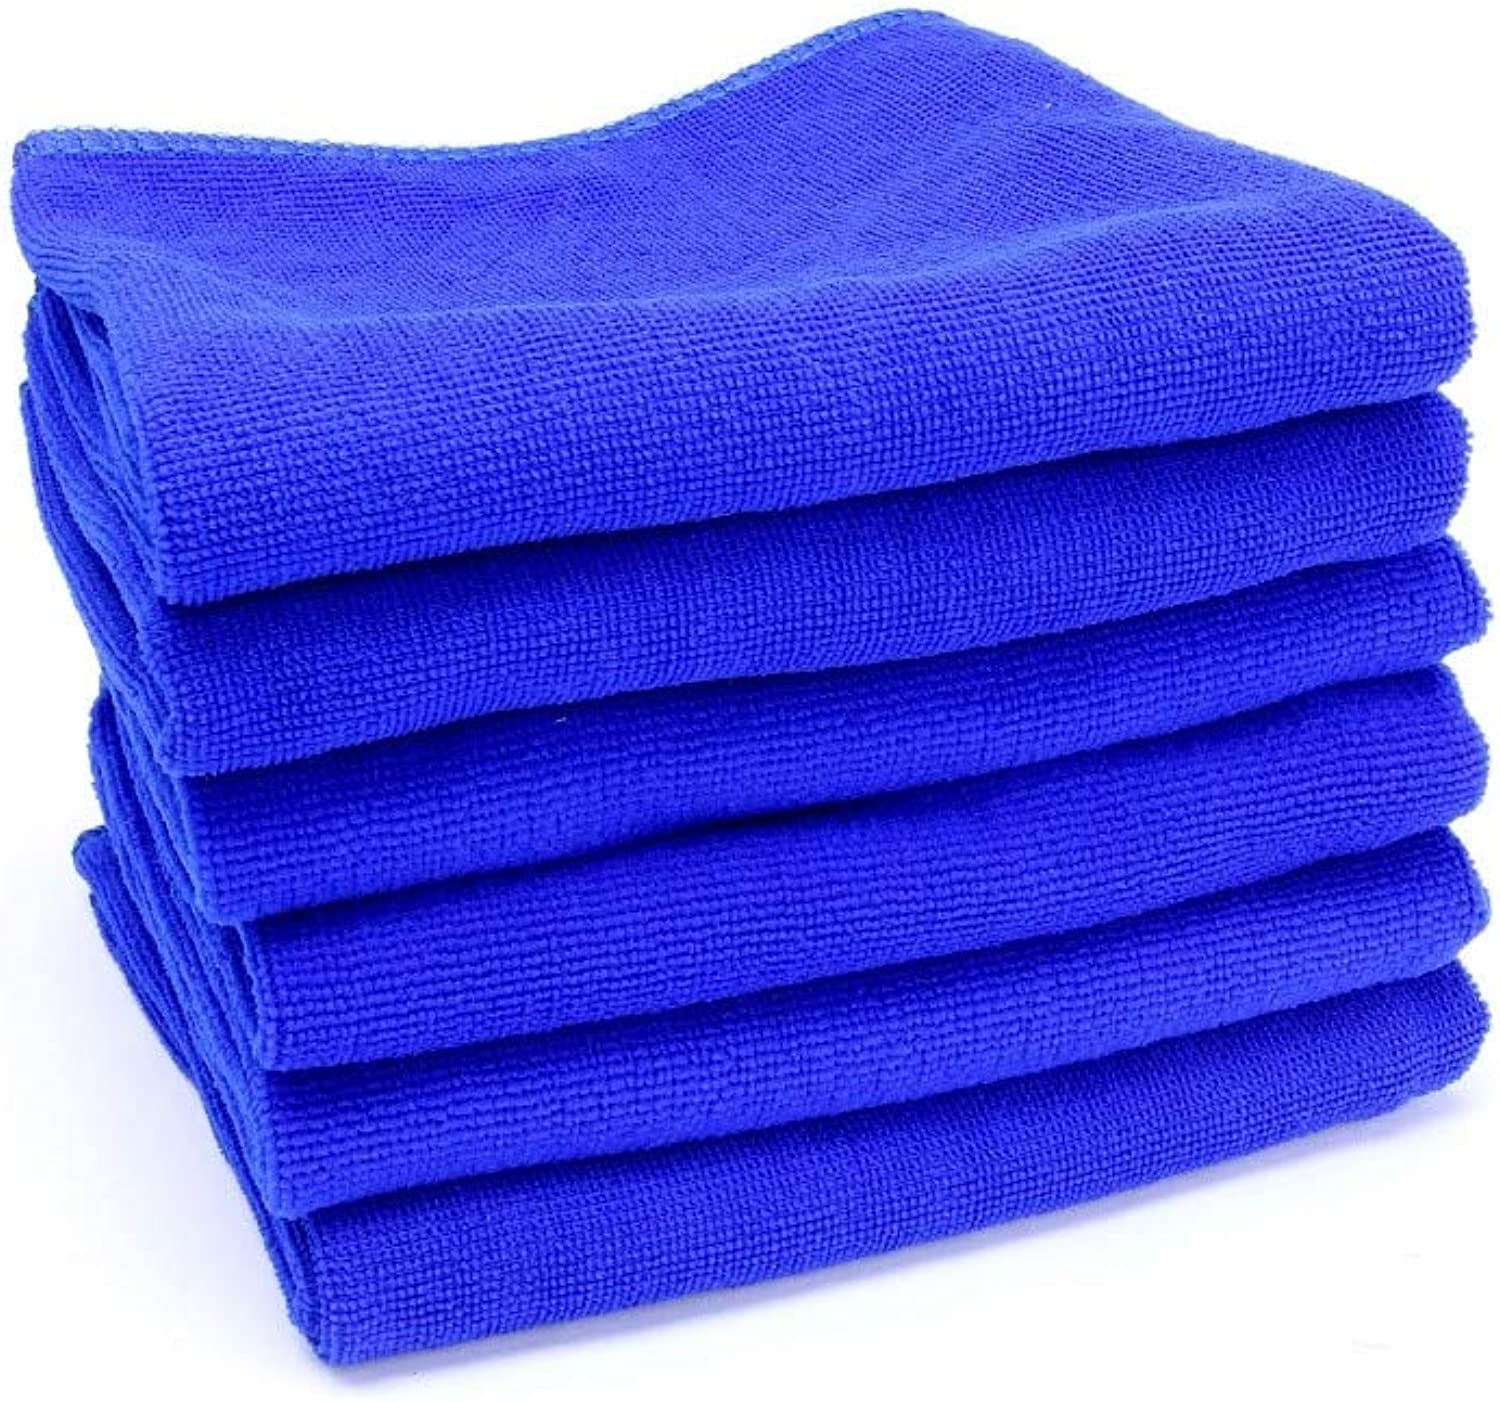 70x30cm Microfiber Towel Car Cleaning Cloth Detailing Polishing Scrubing Hand Towel Car Wash Supplies Car Cleaning Wipes